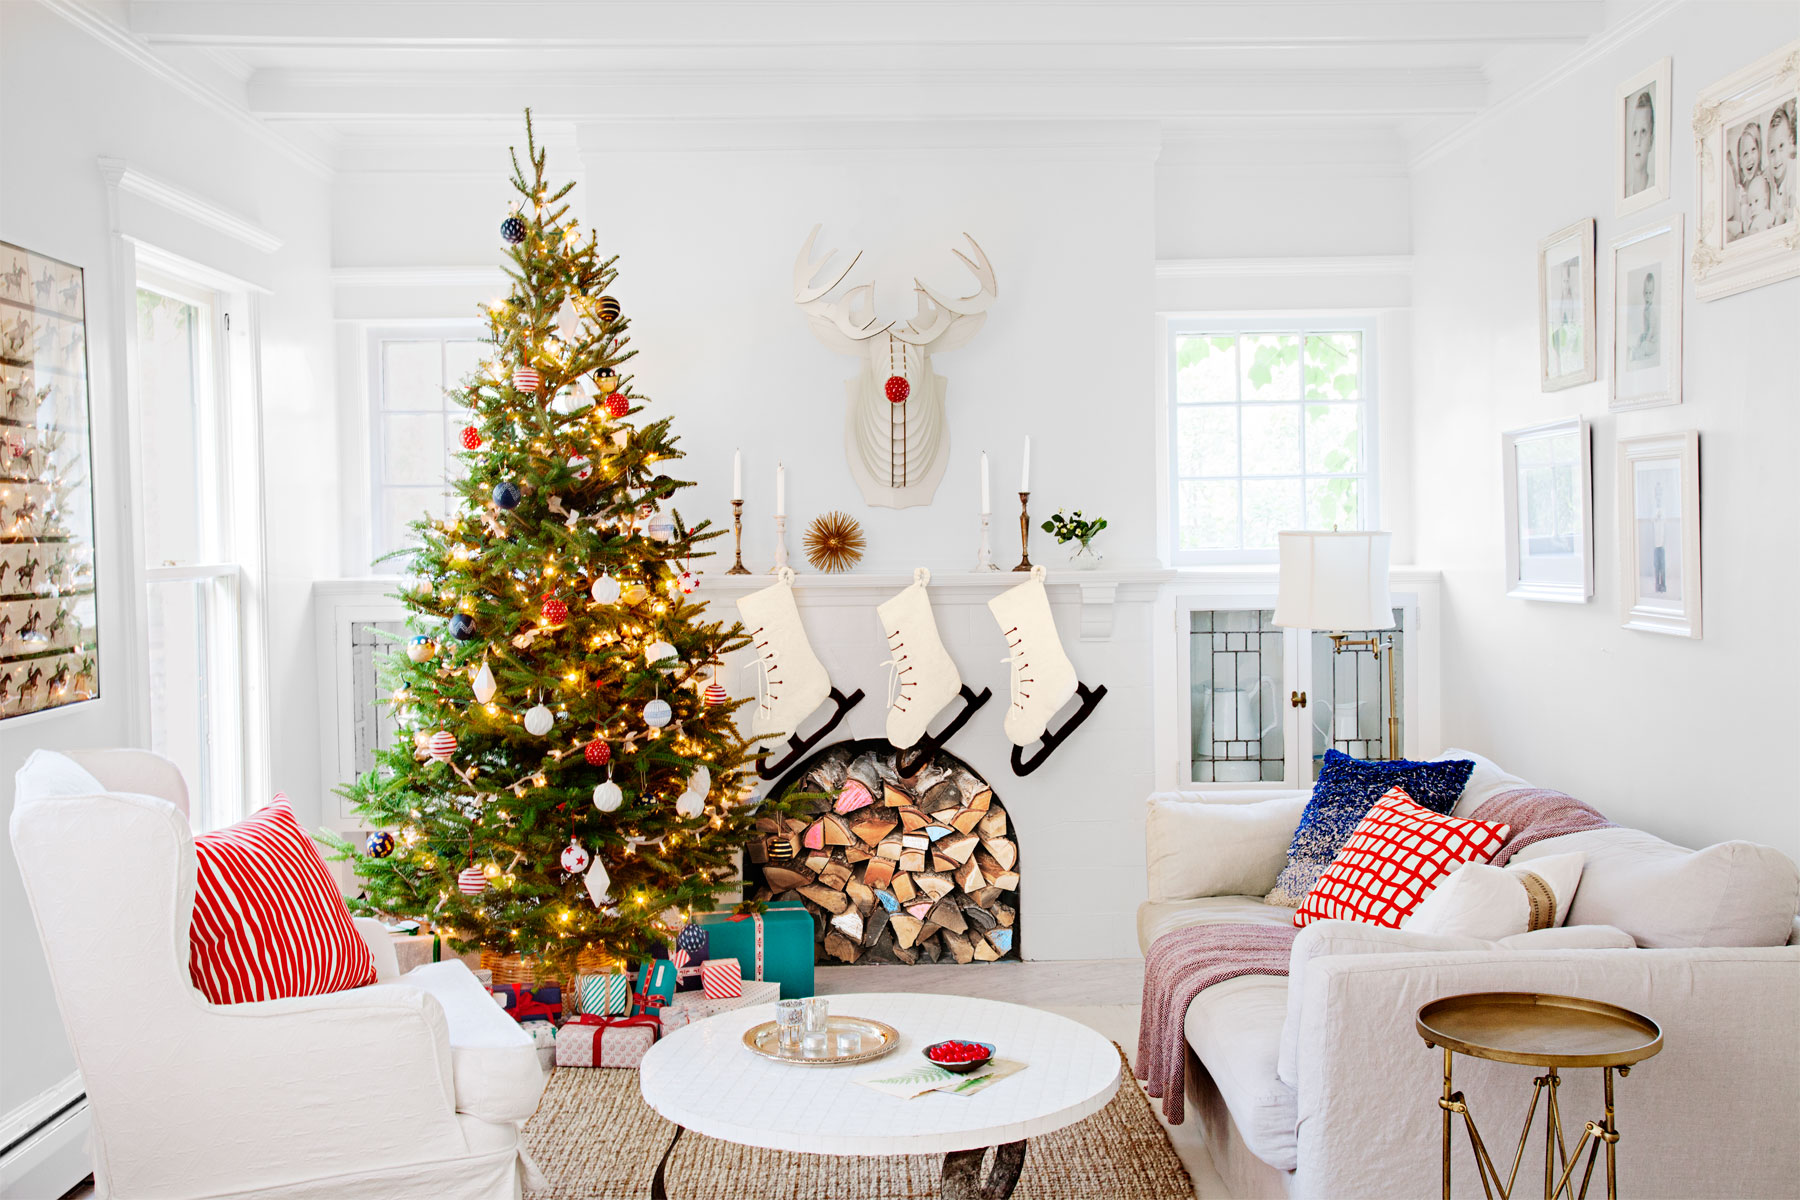 Design Christmas Mantel Ideas 38 christmas mantel decorations ideas for holiday fireplace decorating